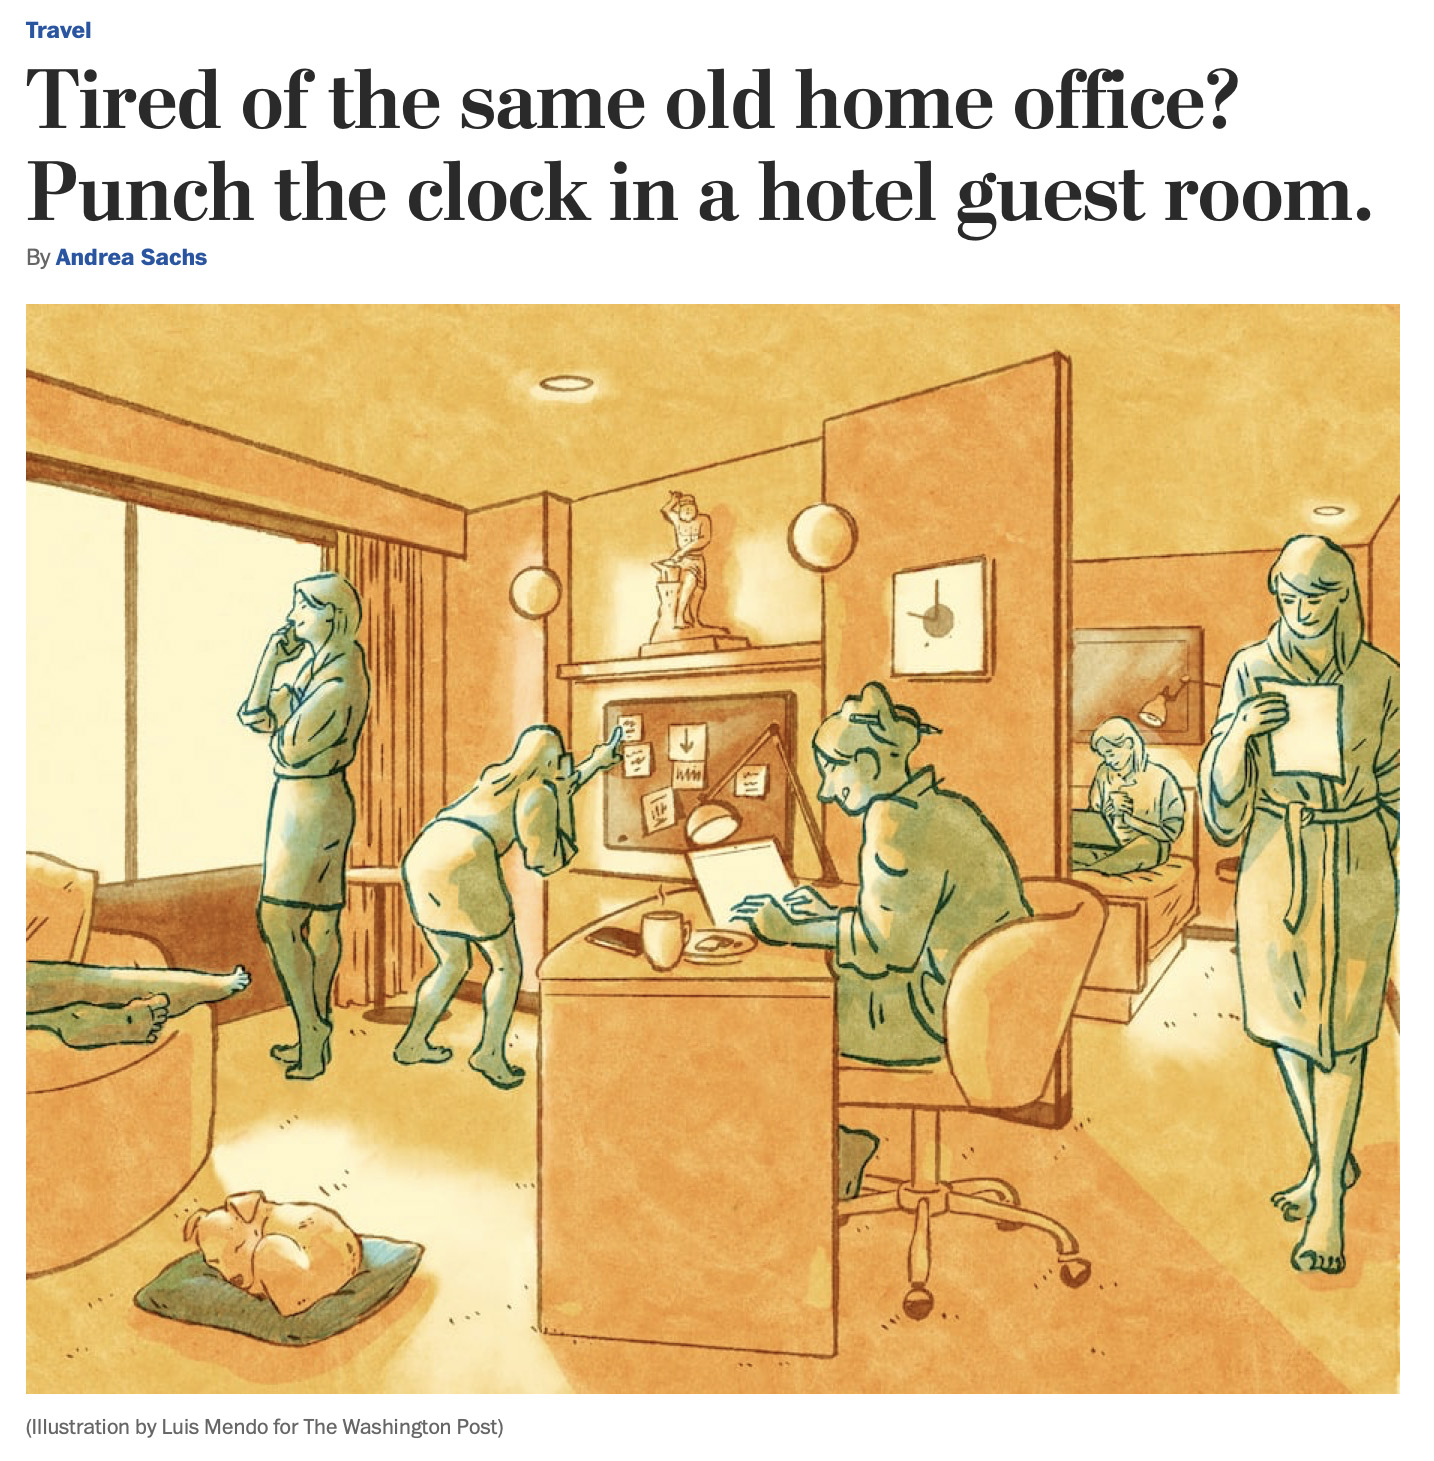 Tired of the same old home office? Punch the clock in a hotel guest room.